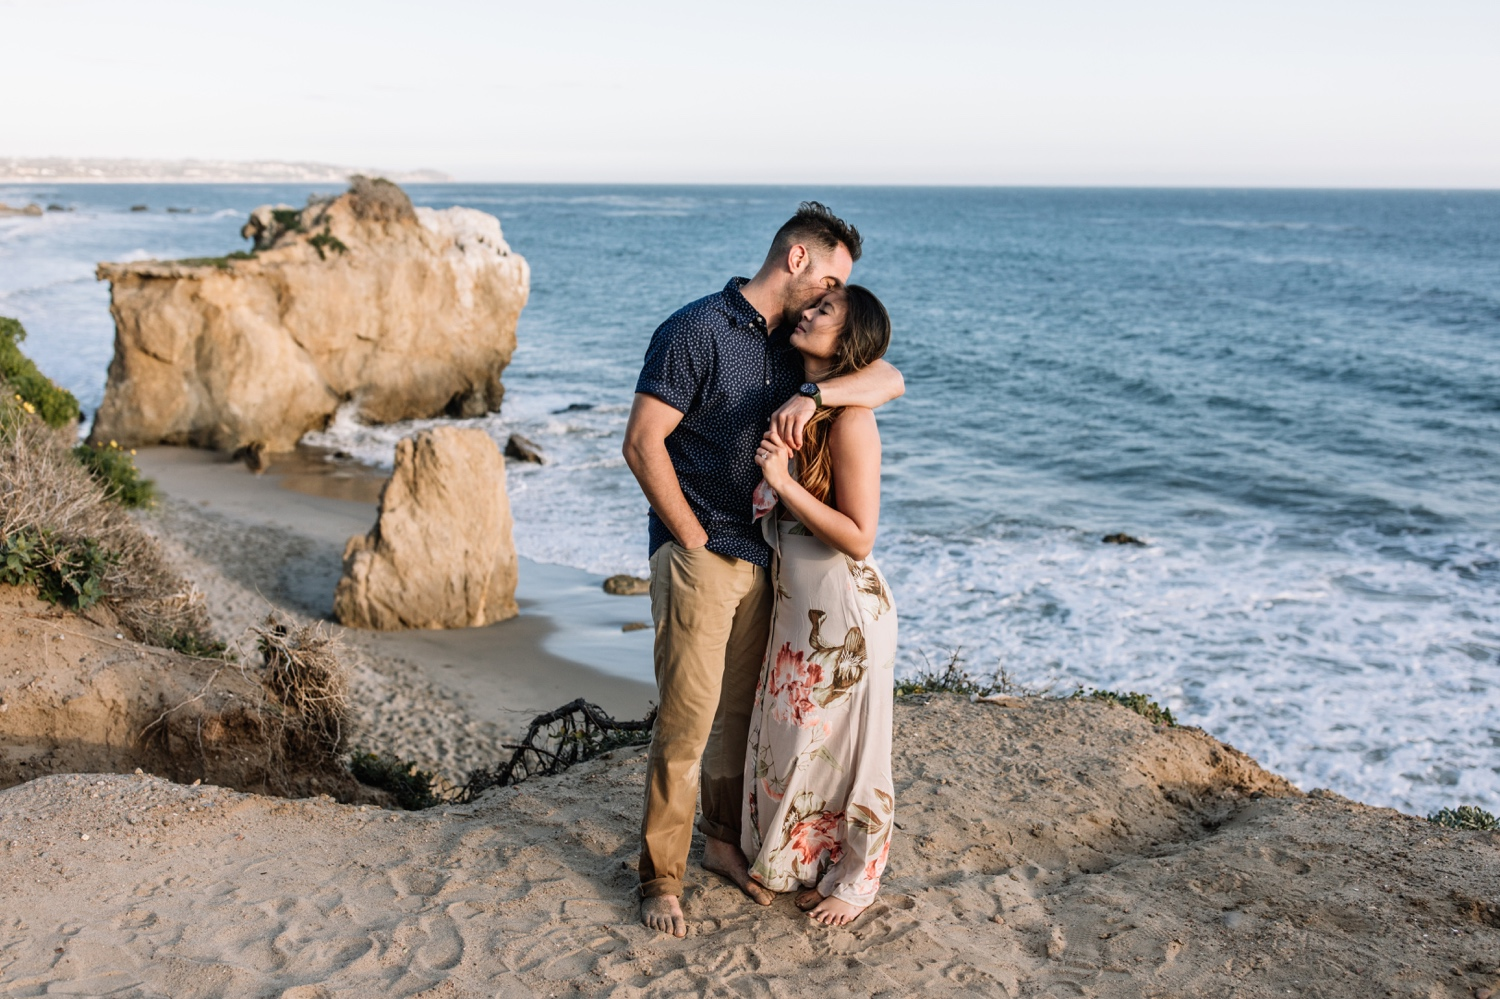 Romantic coastal California lifestyle engagement shoot